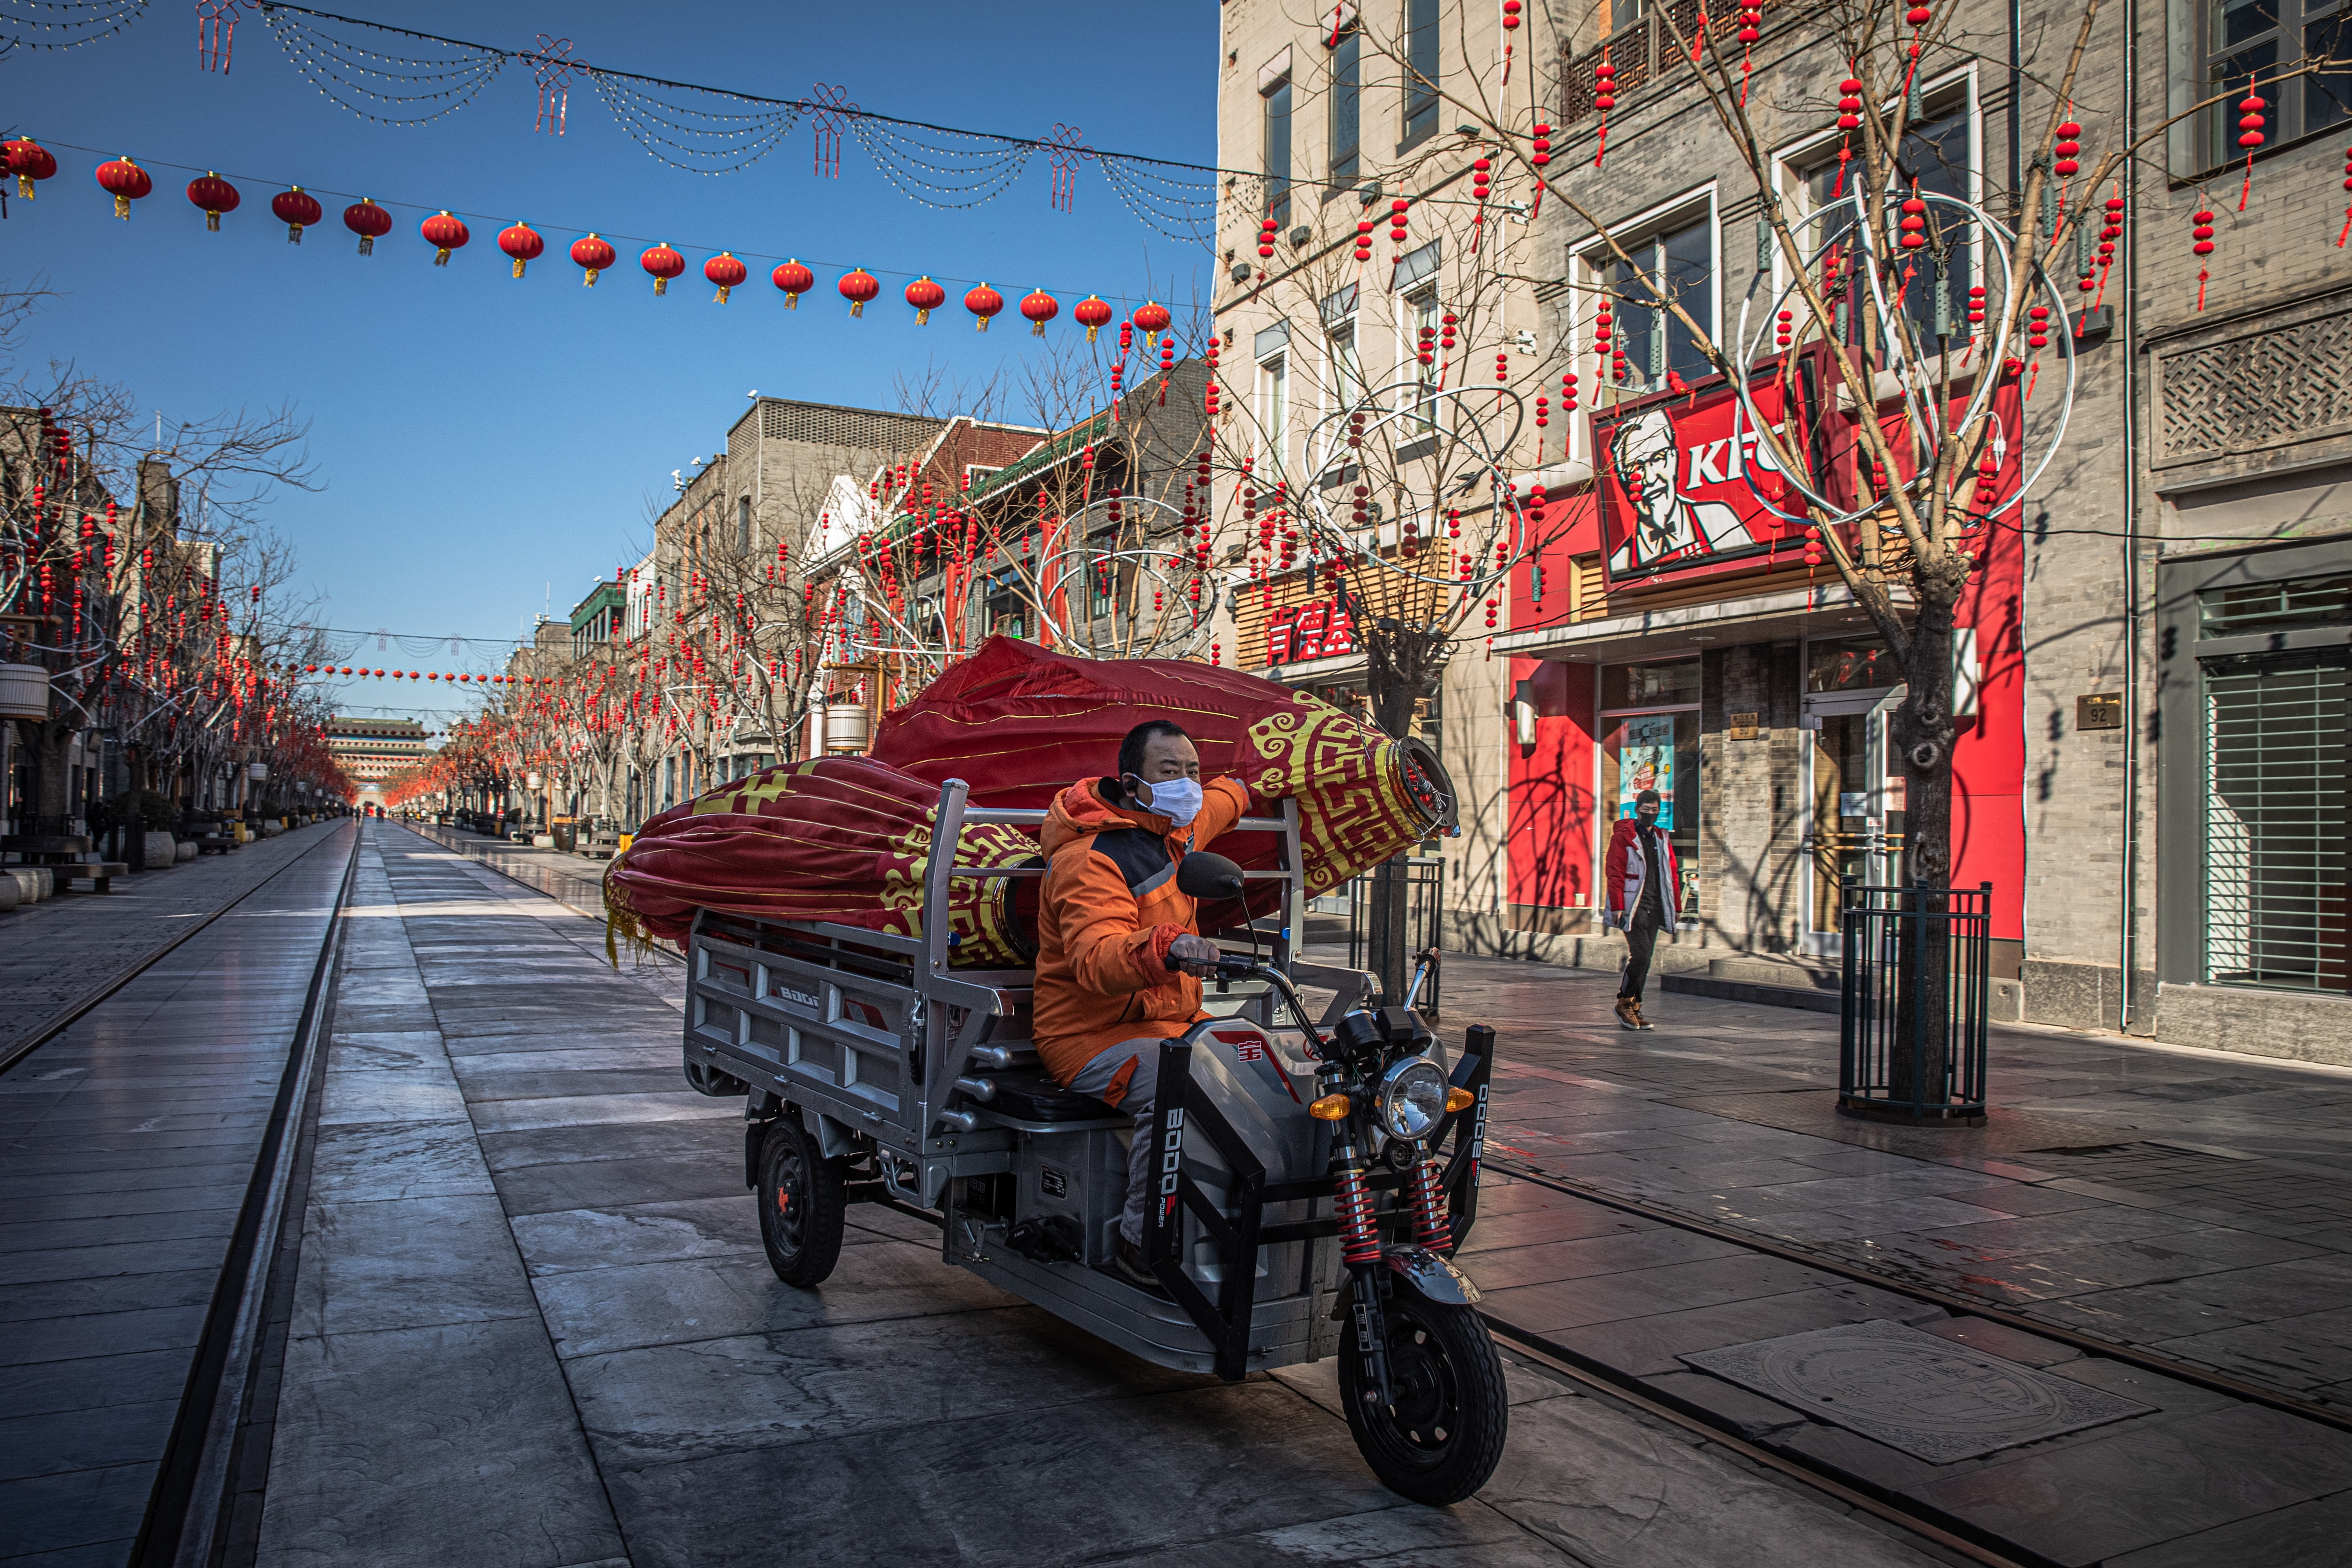 A worker wearing a protective face mask rides a three-wheeled vehicle on an almost empty pedestrian shopping street named Qianmen, in Beijing, China.